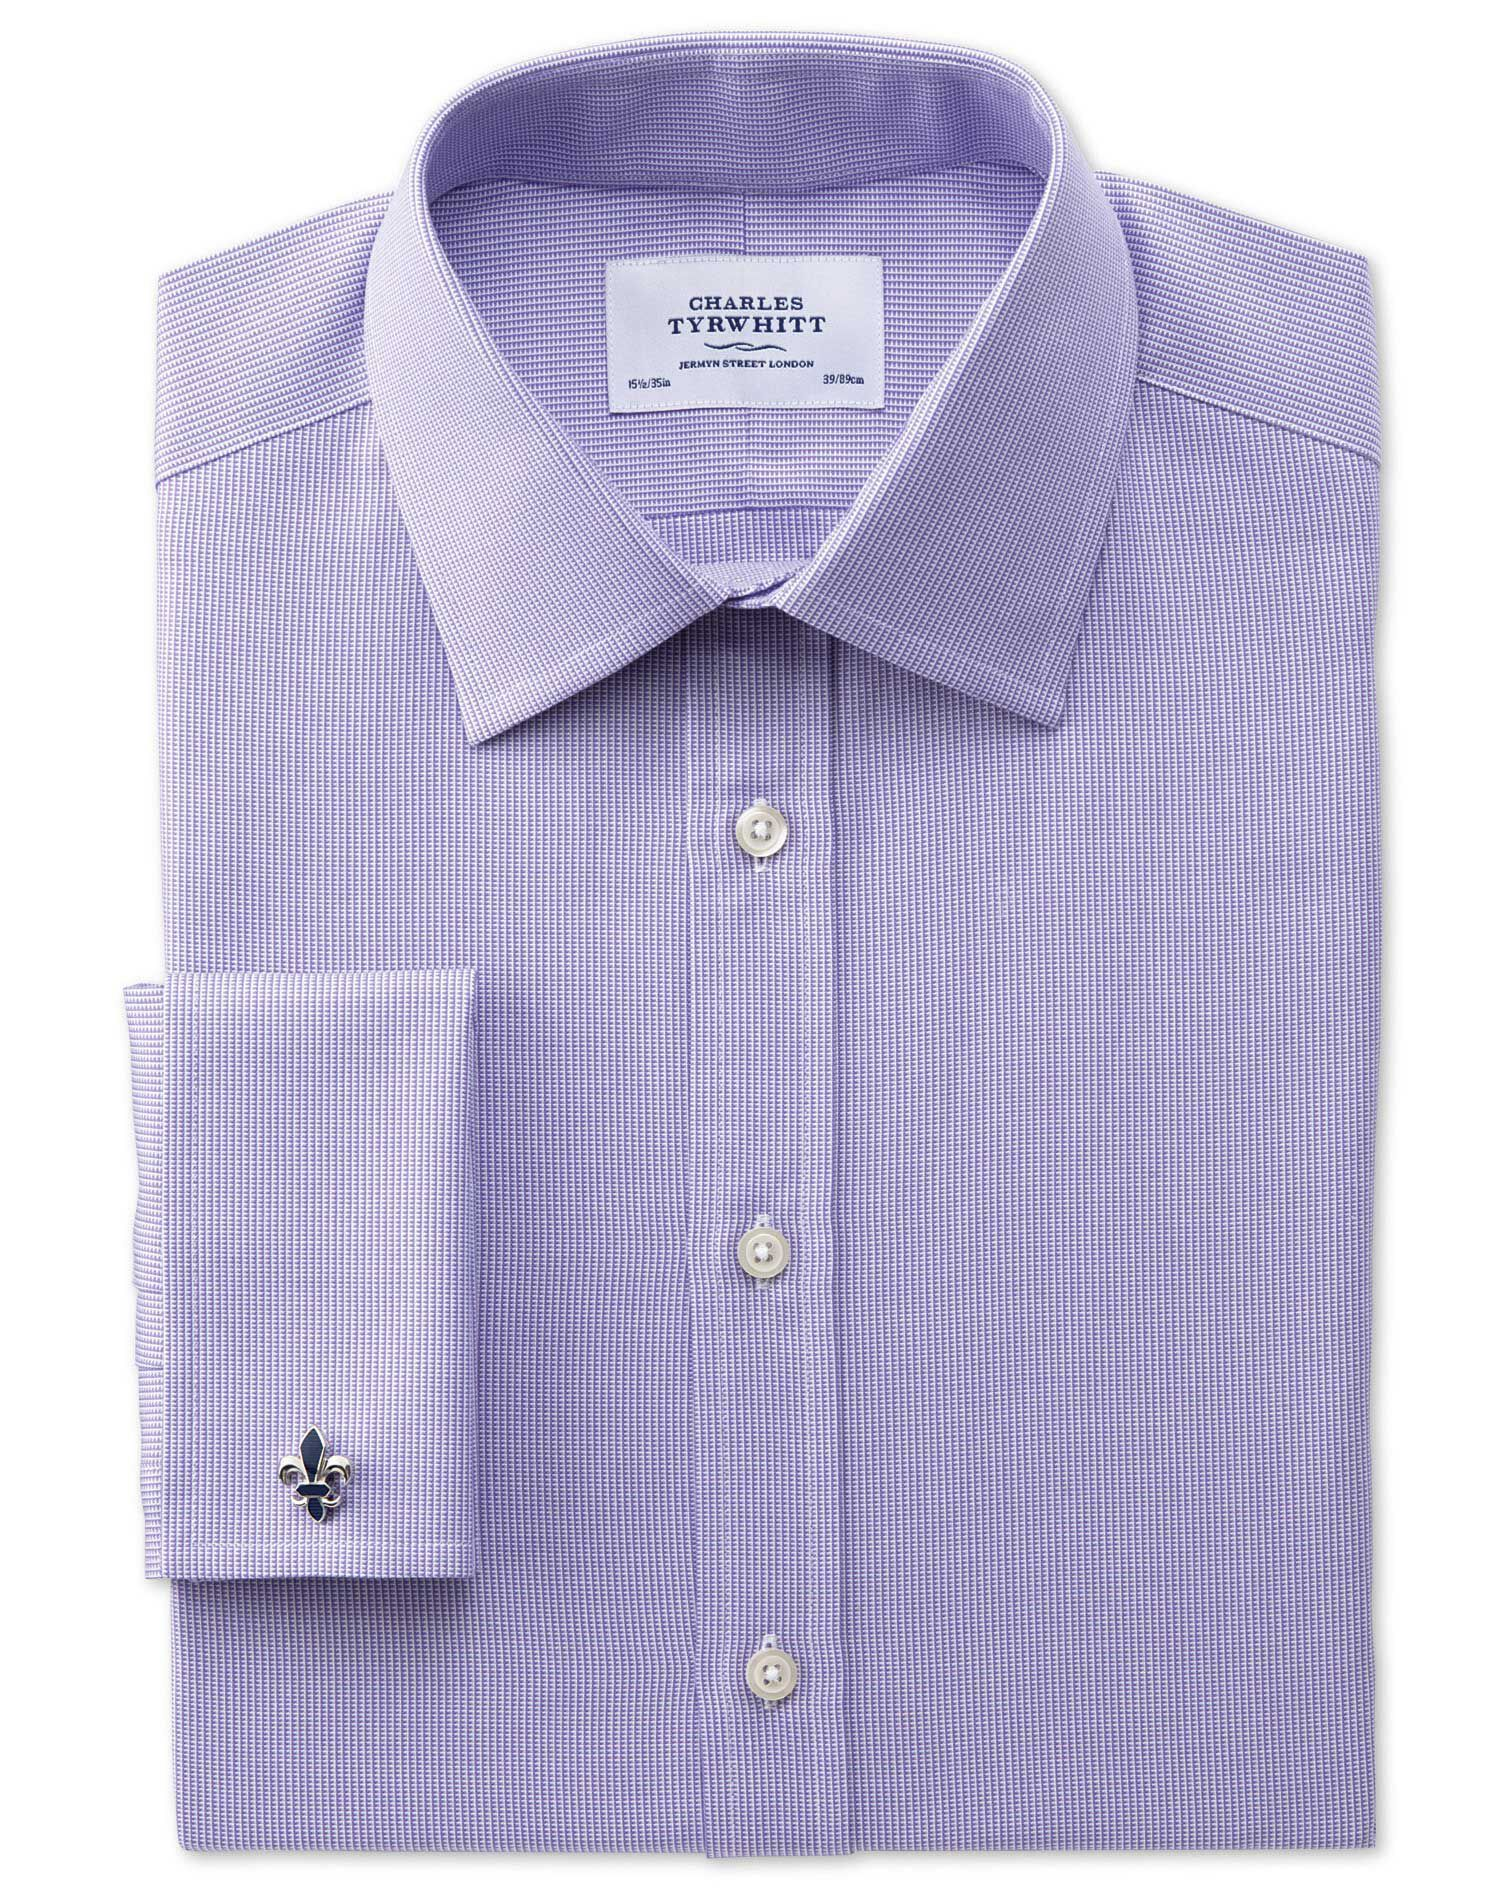 Slim Fit Oxford Lilac Cotton Formal Shirt Double Cuff Size 14.5/33 by Charles Tyrwhitt